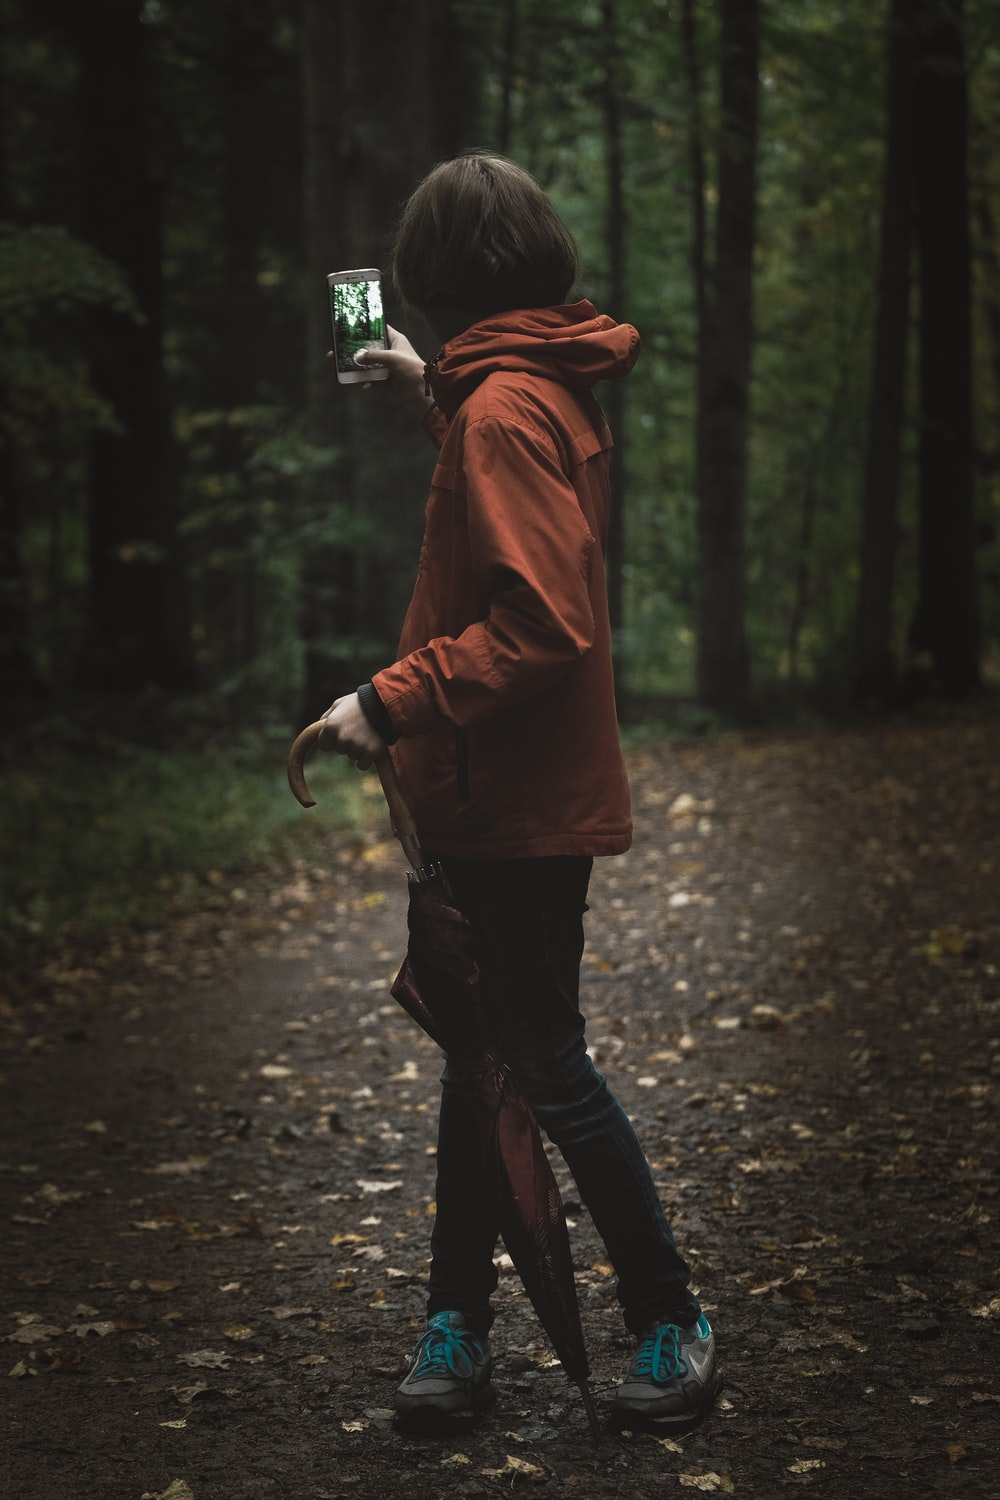 woman wearing red hoodie holding smartphone near green leafed tree